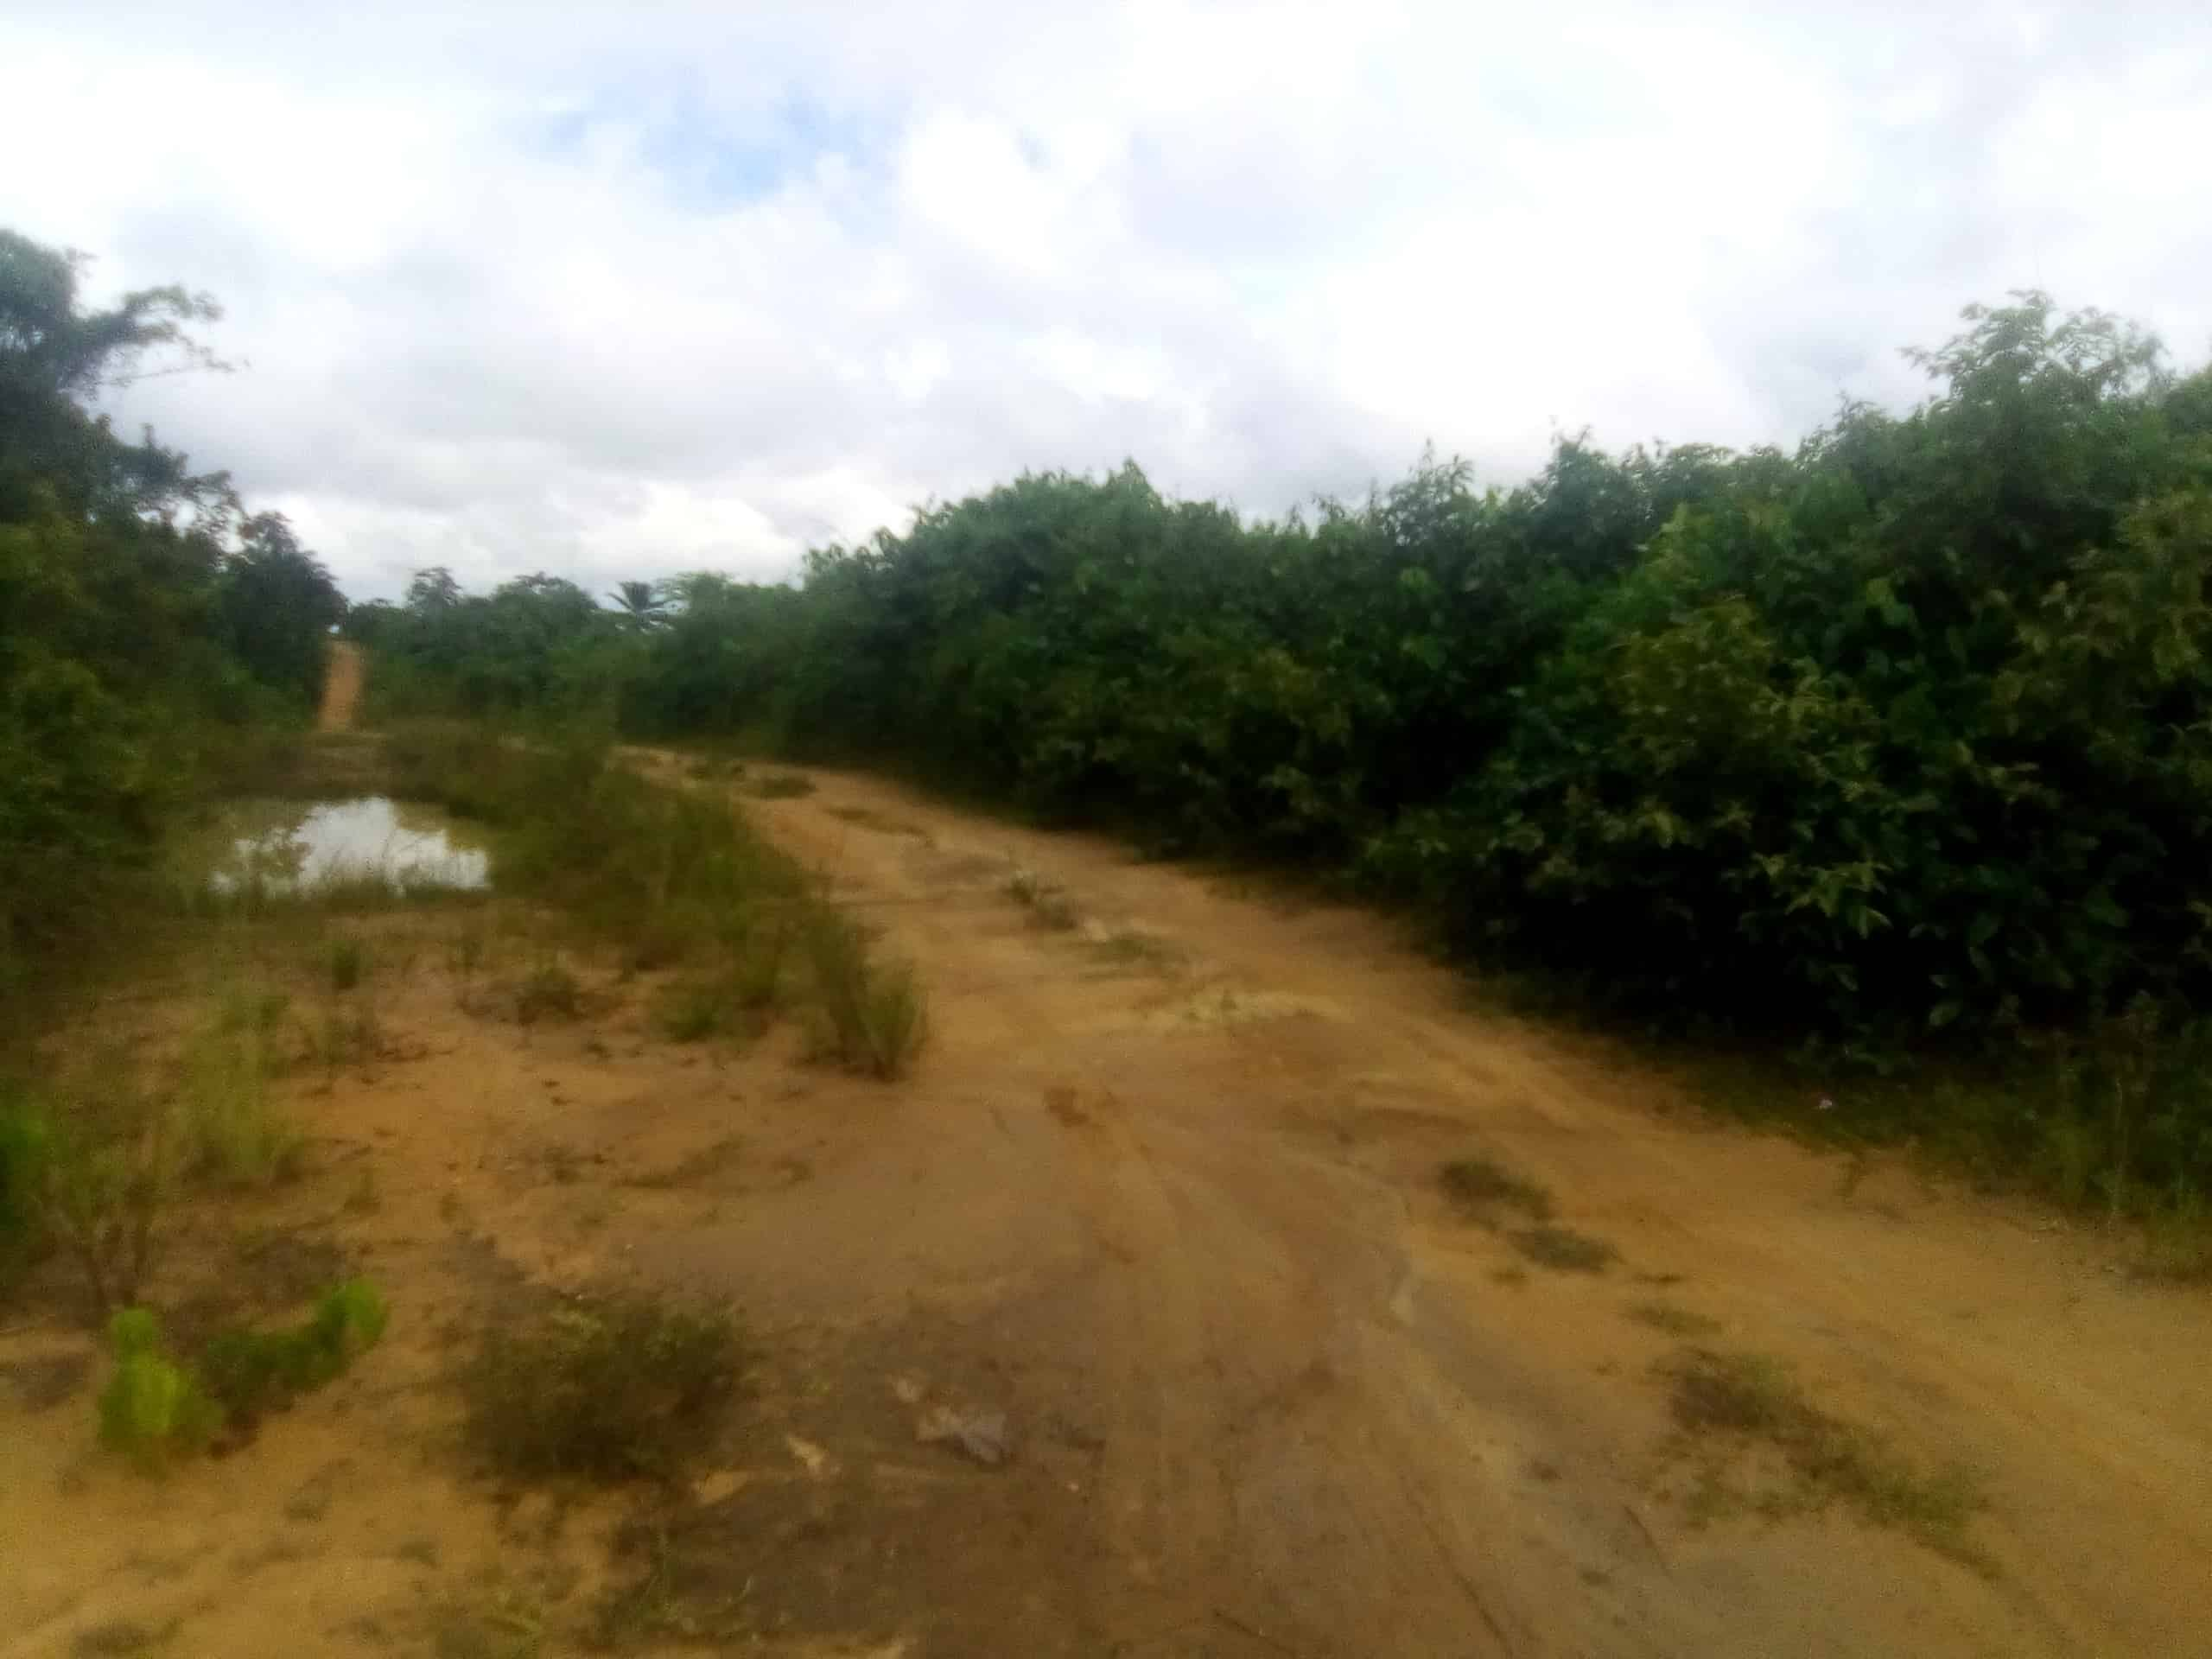 Land for sale at Douala, Logbessou II, Bassong - 125 m2 - 800 000 FCFA